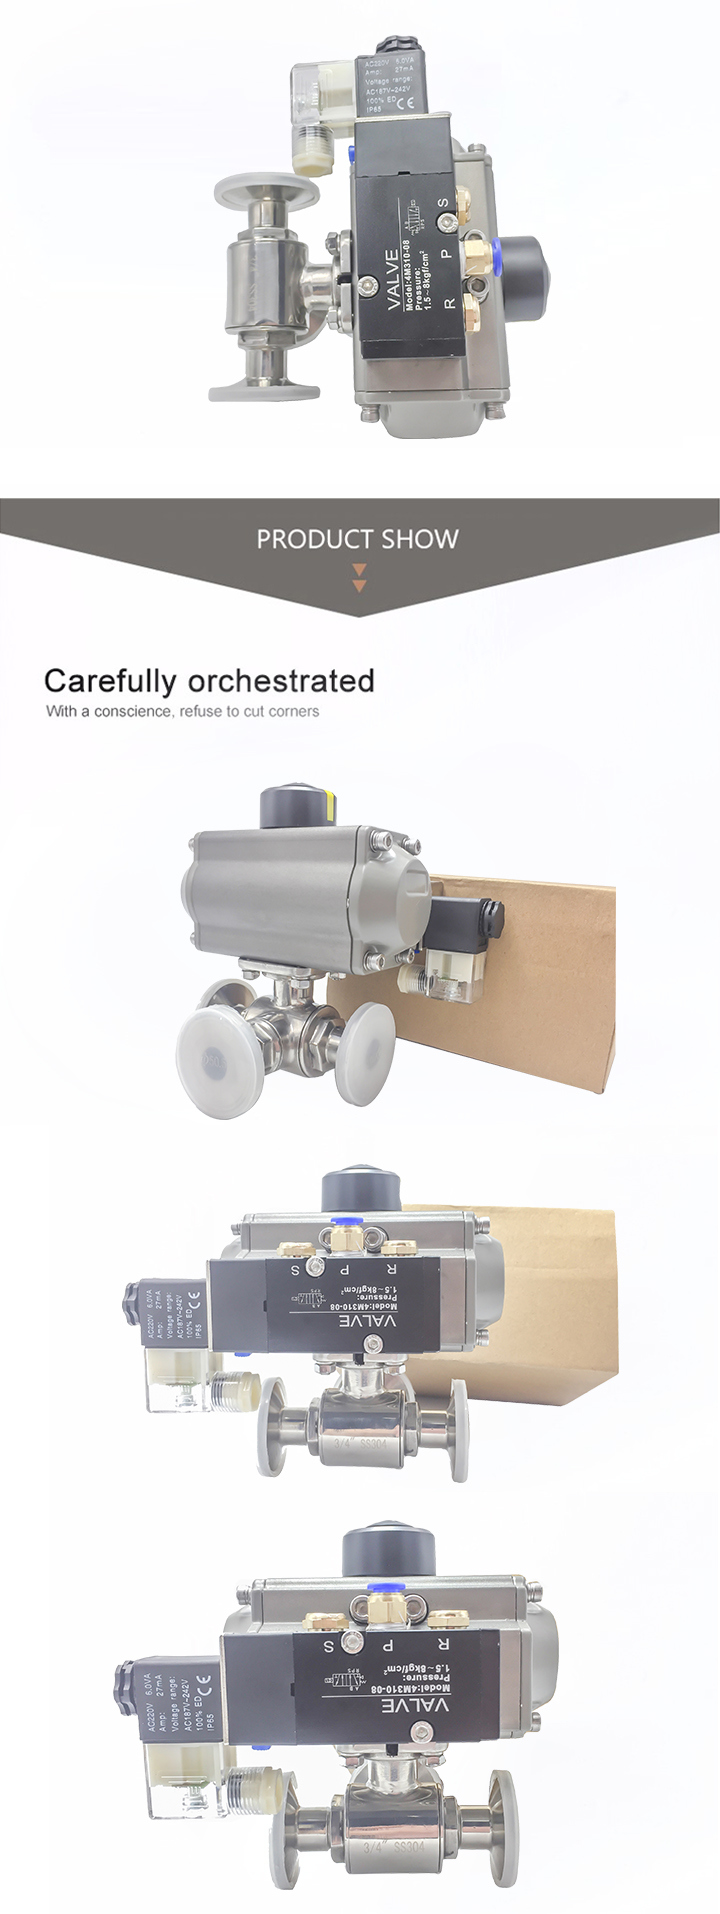 3-Ways Clamping Ball Valves with Pnumatic Actuator and Solenoid Valve